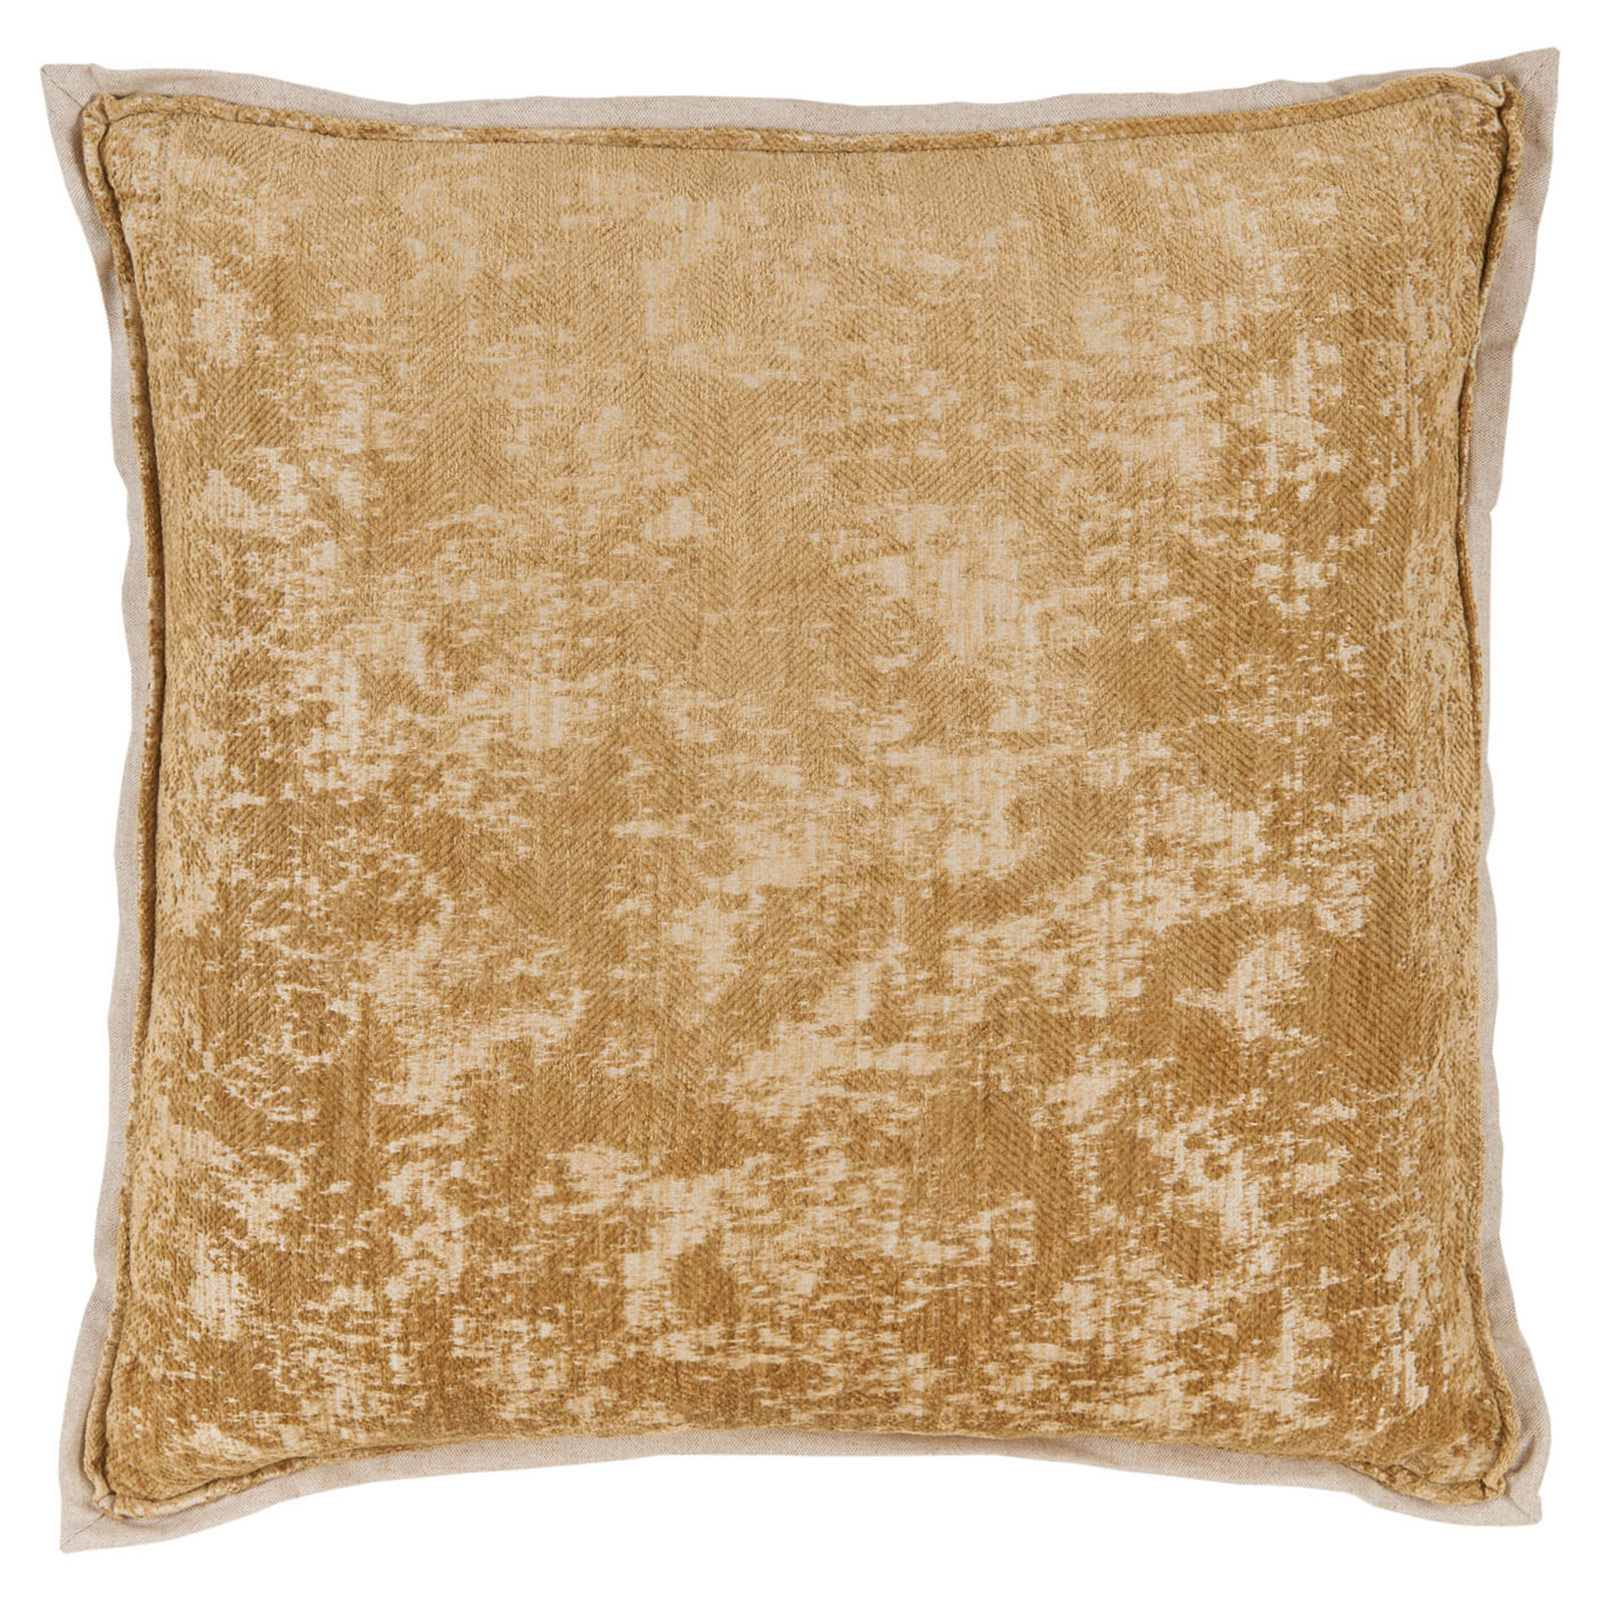 Harriet Regency Washed Herringbone Gold Pillow - 22x22